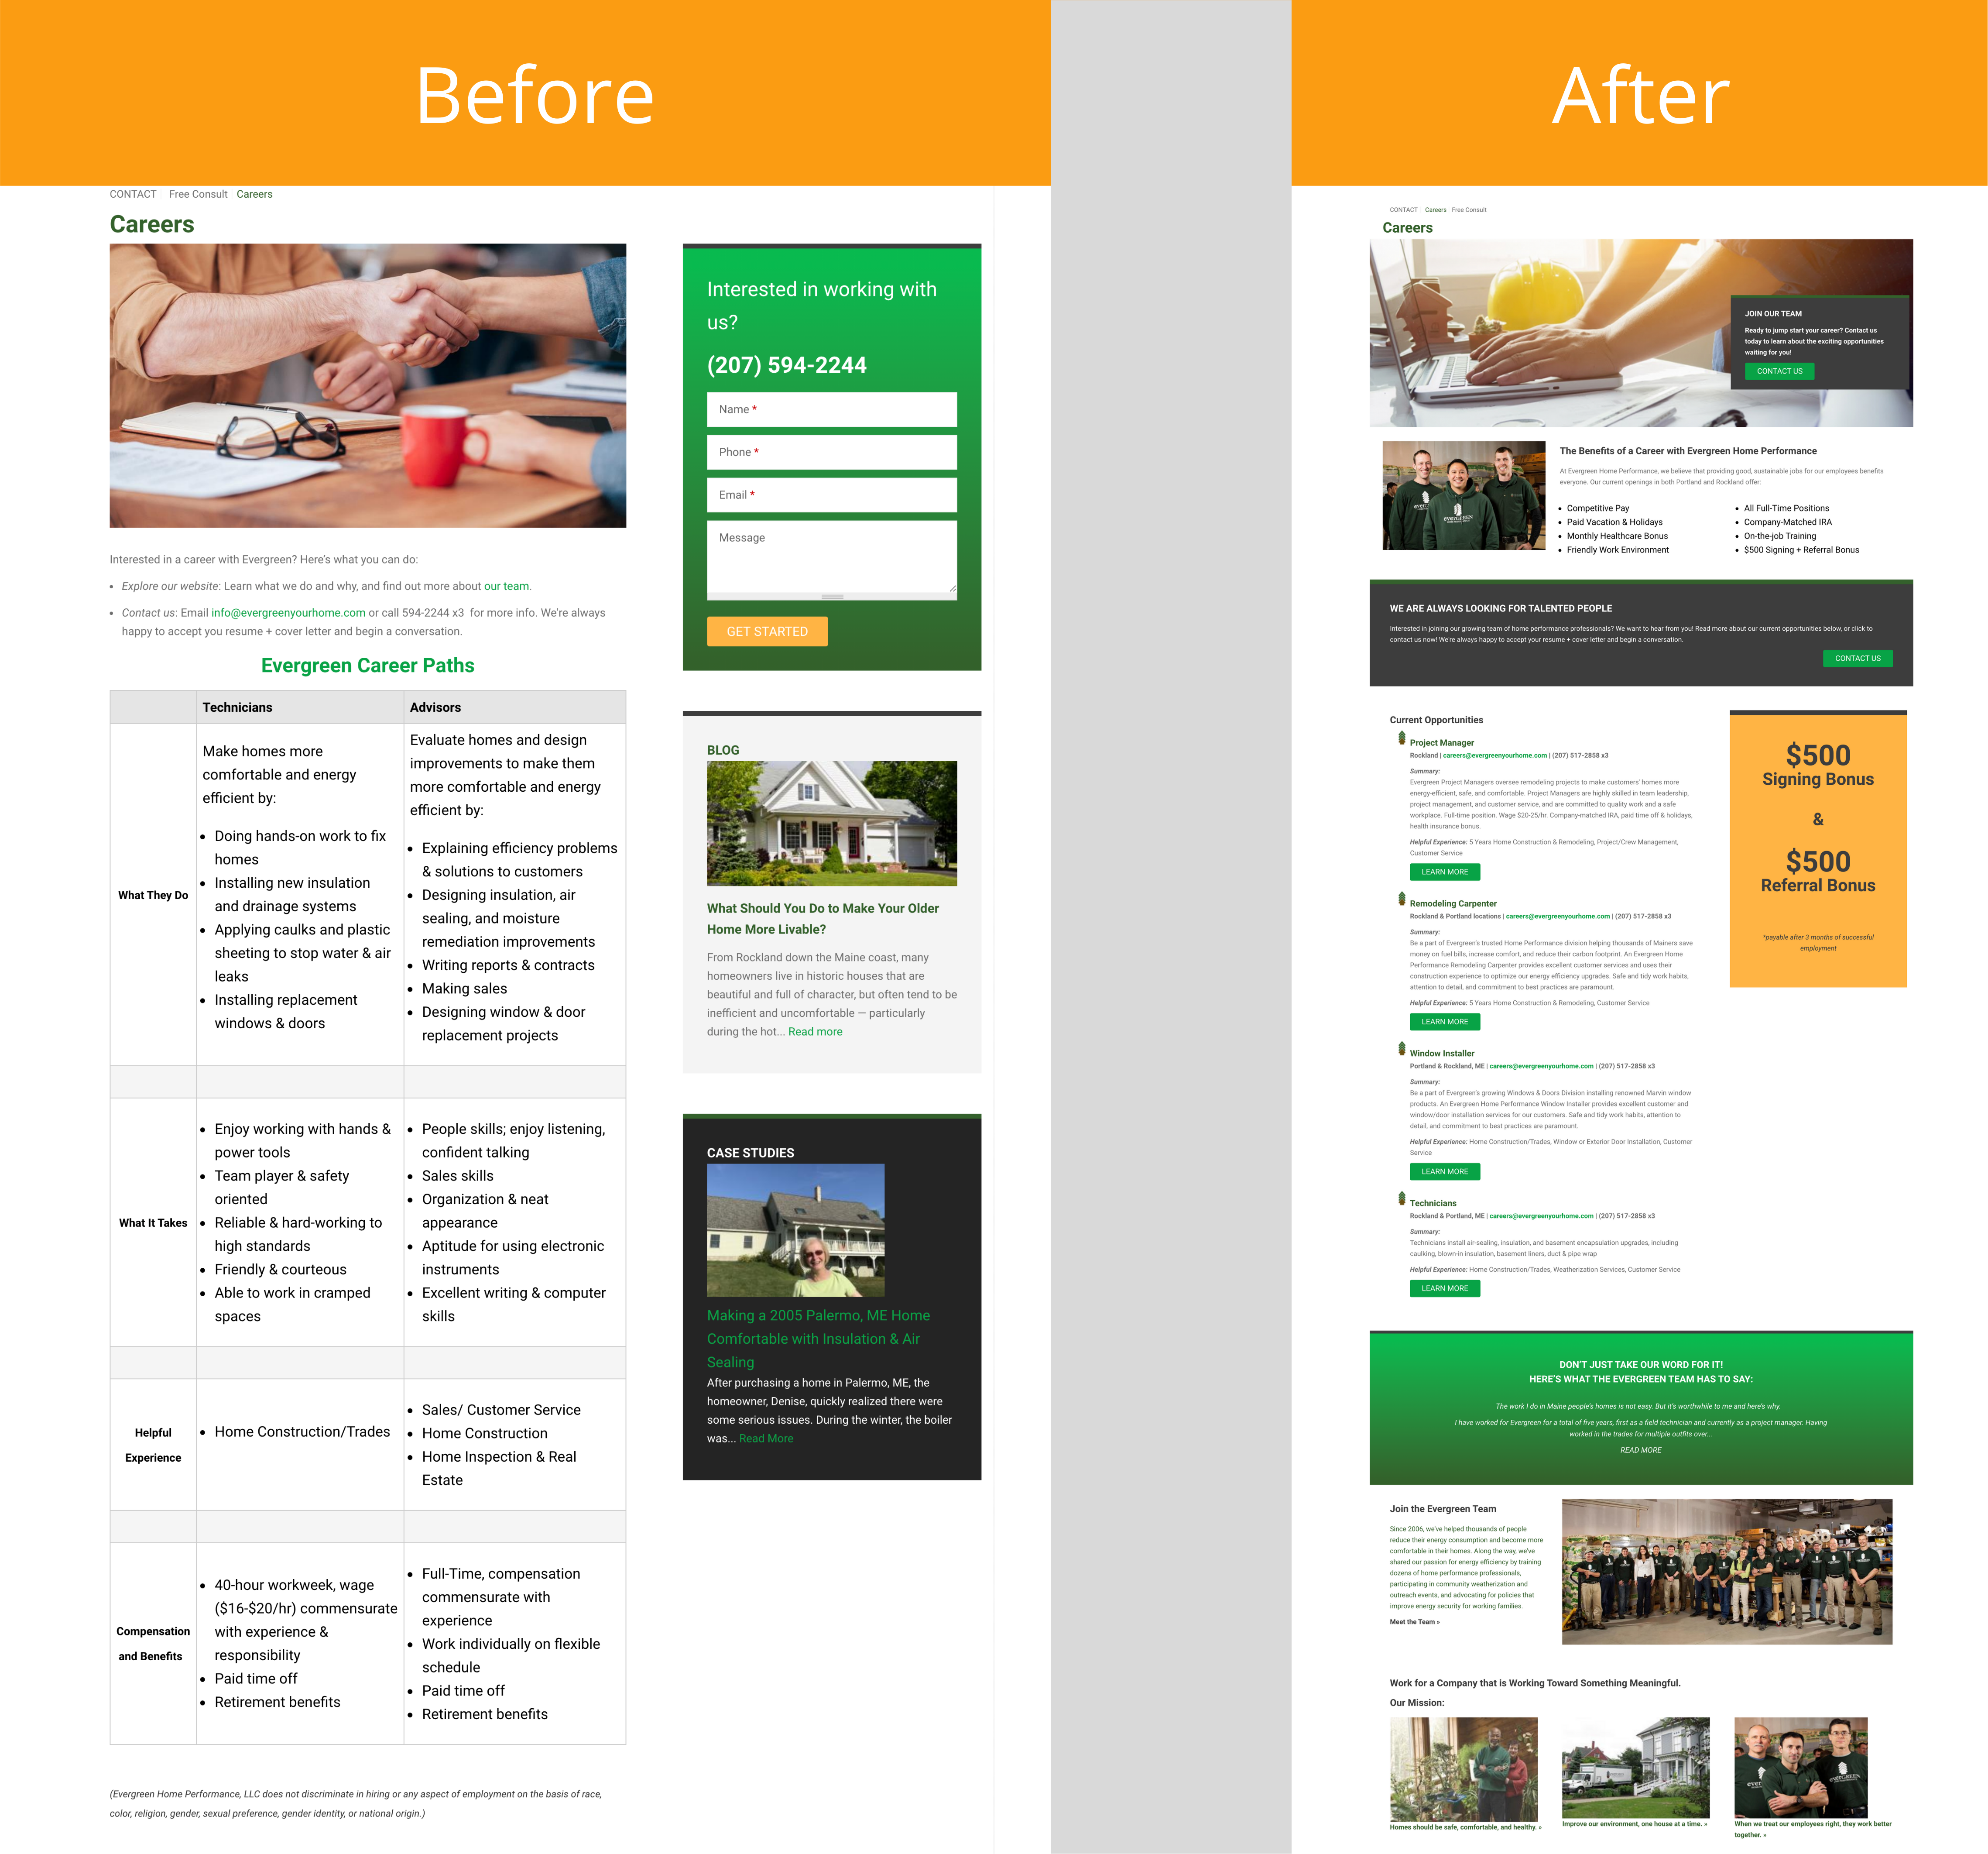 Careers Page Before And After Graphic